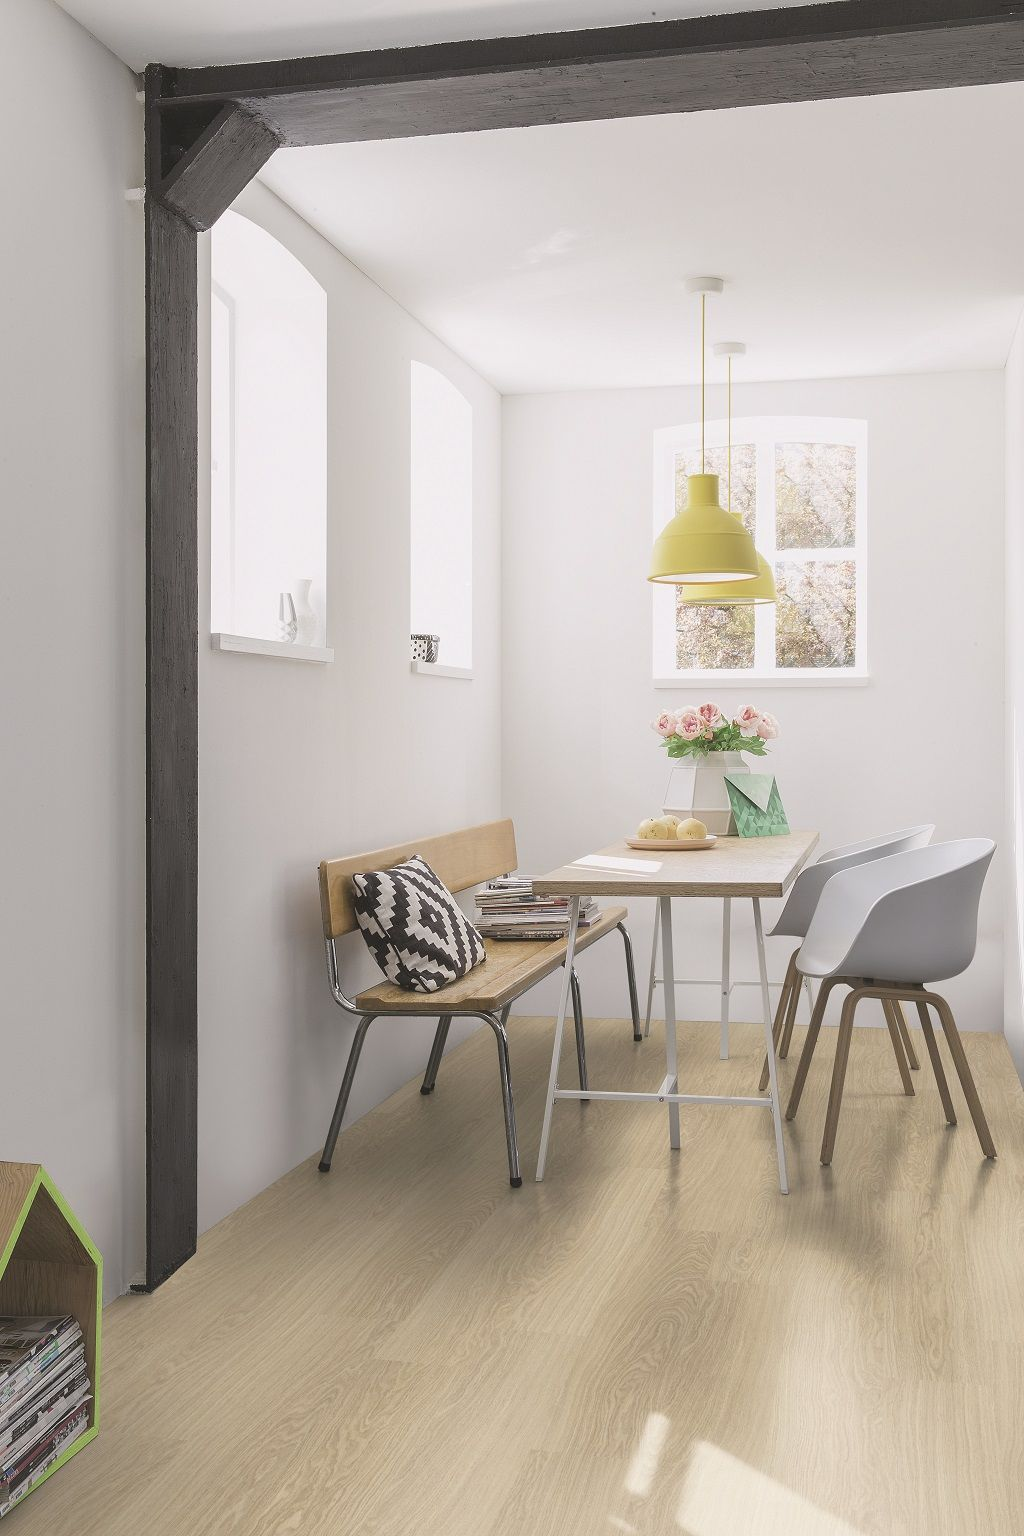 Quick Step Laminate Flooring   Classic U0027Victoria Oaku0027 (CLM3185) In A Trendy  Dining Room. To Find More Dining Room Inspiration, Visit Our Website: ...